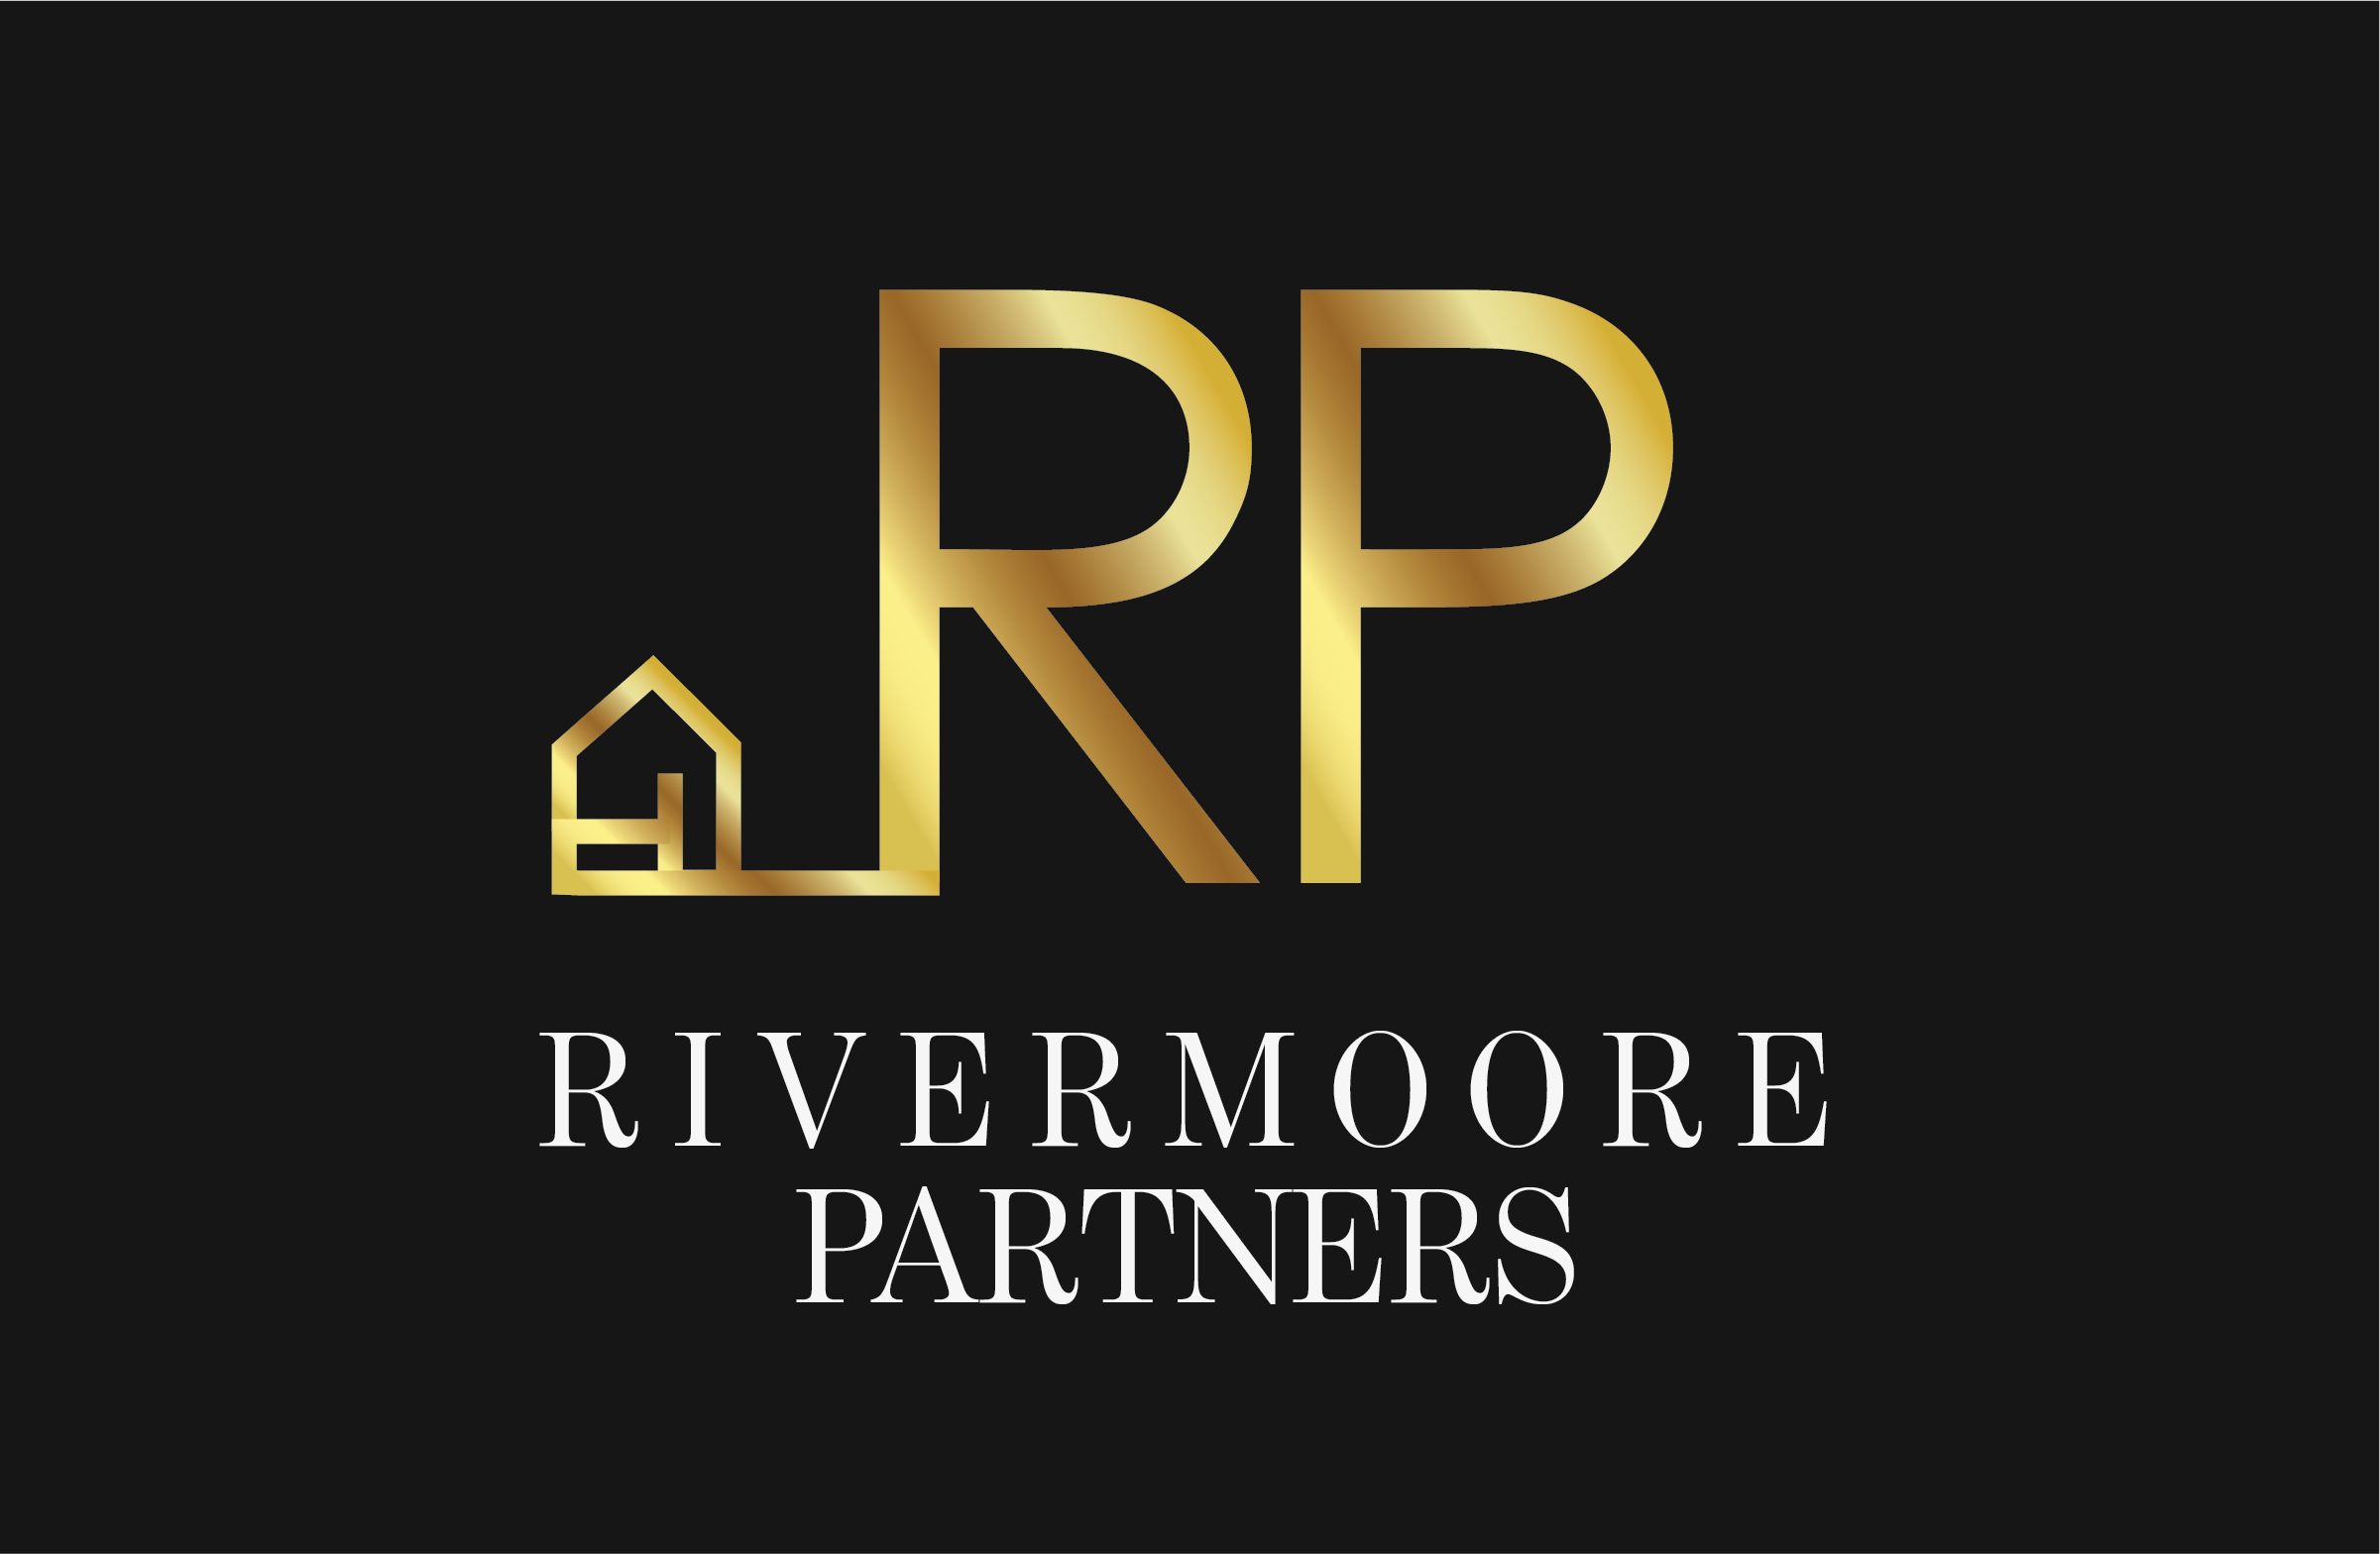 rivermoorepartnersrealty